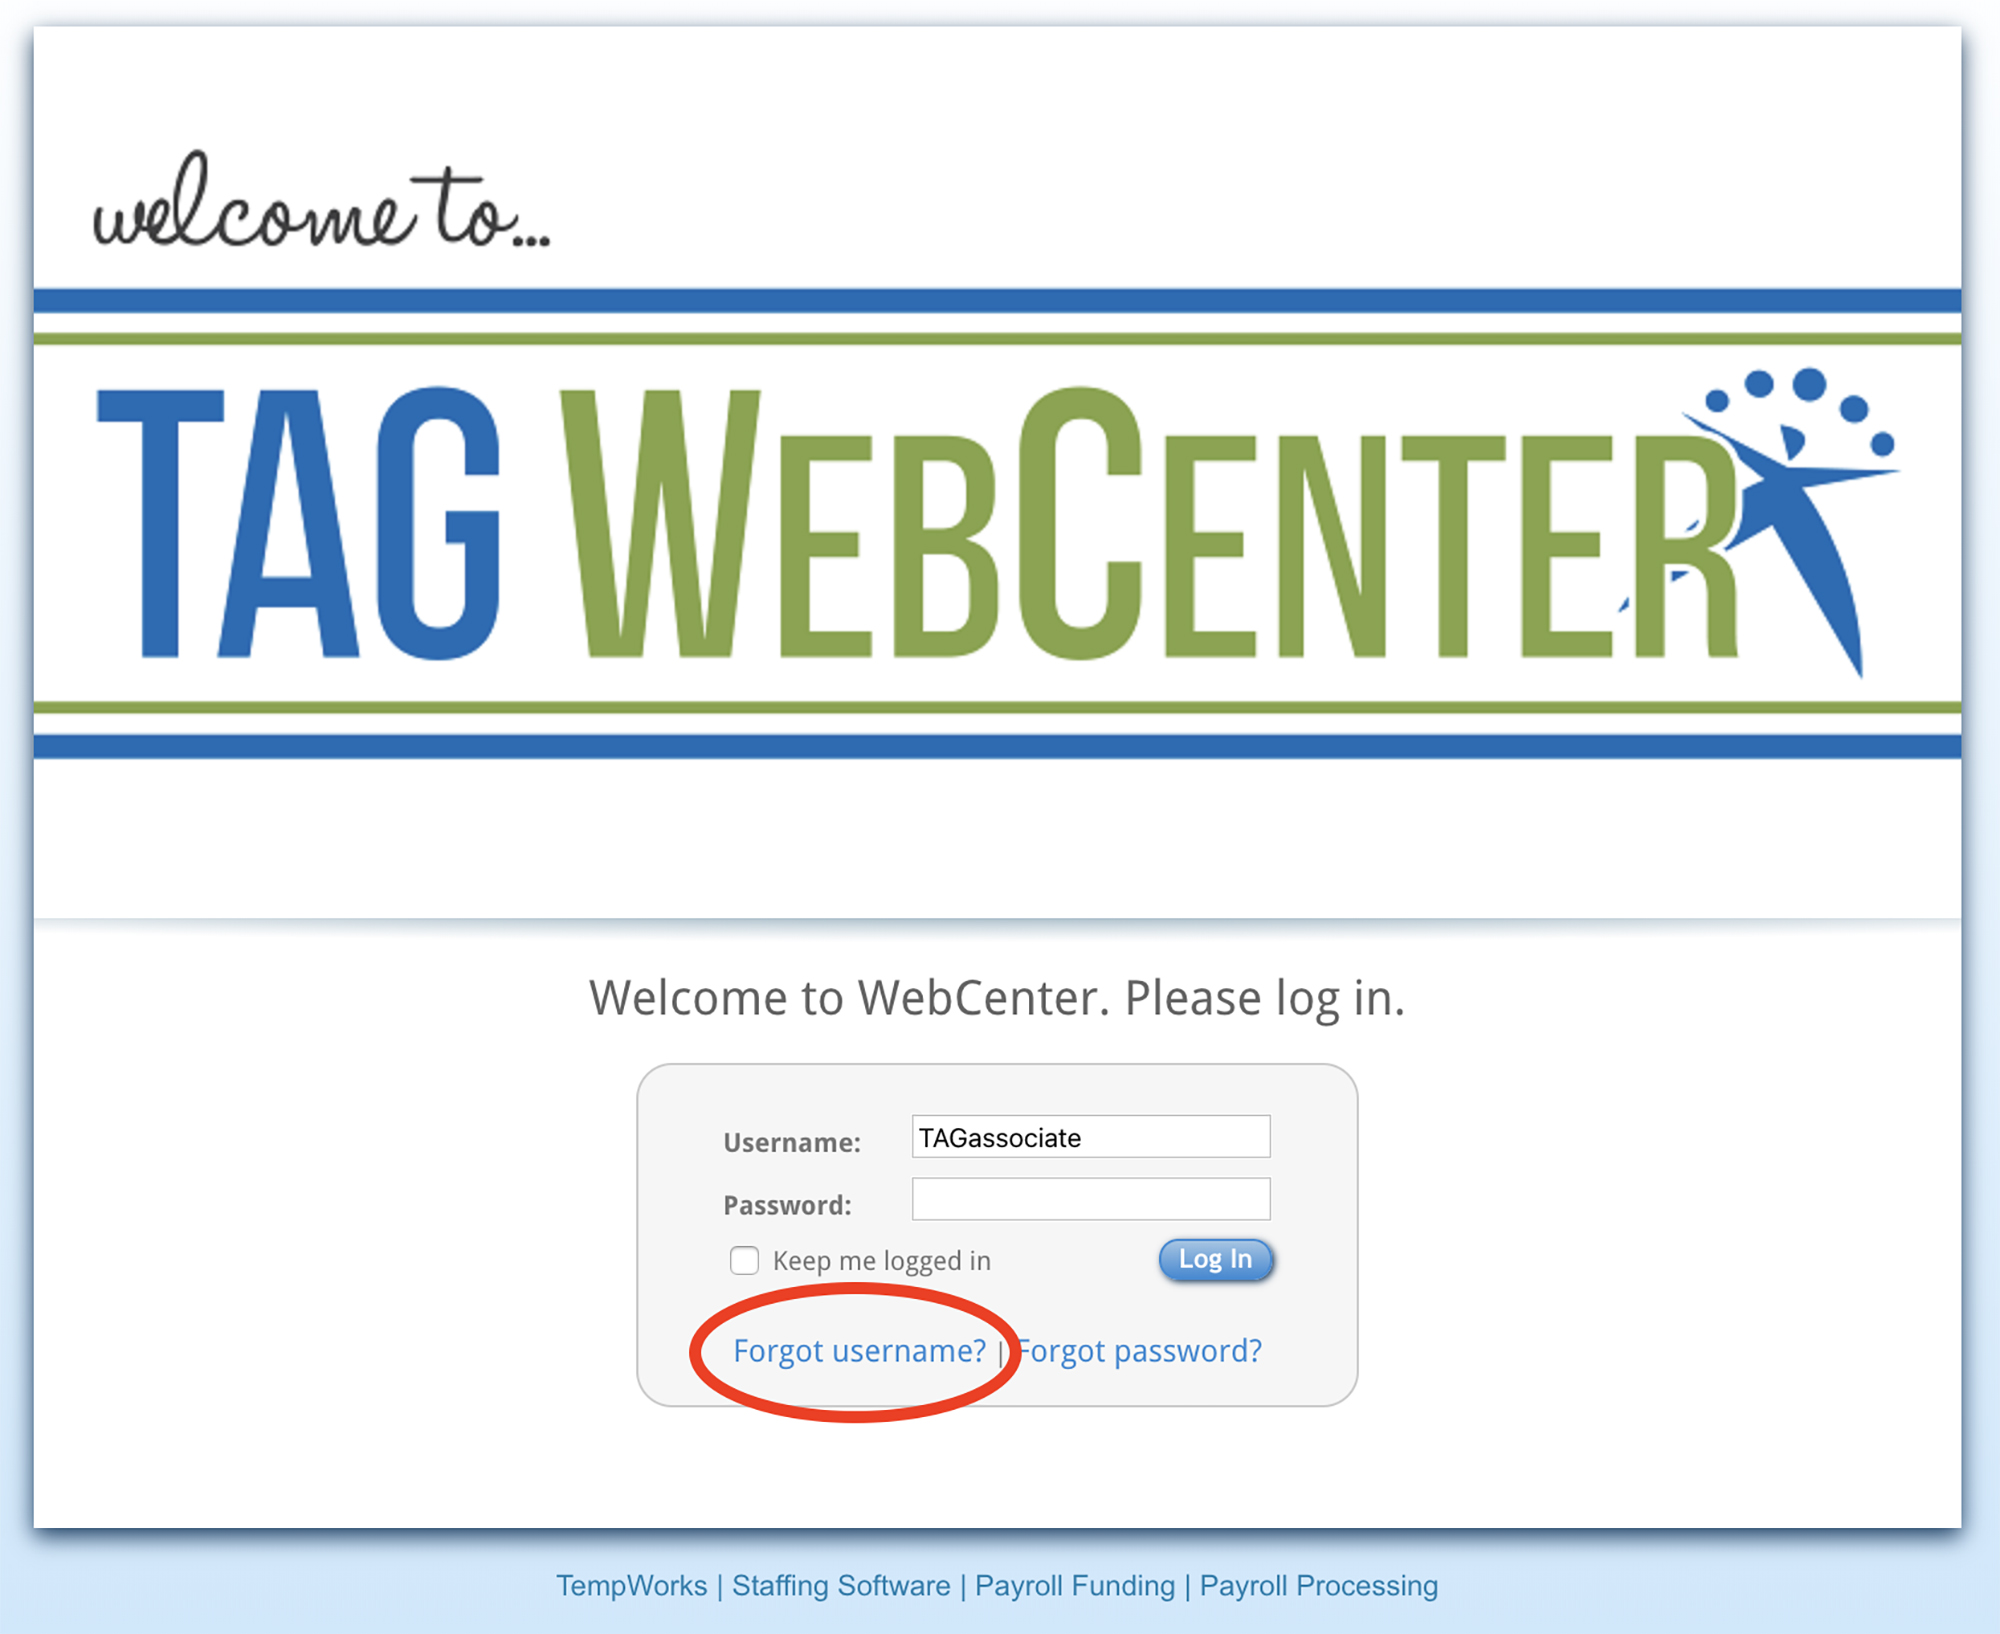 WebCenter